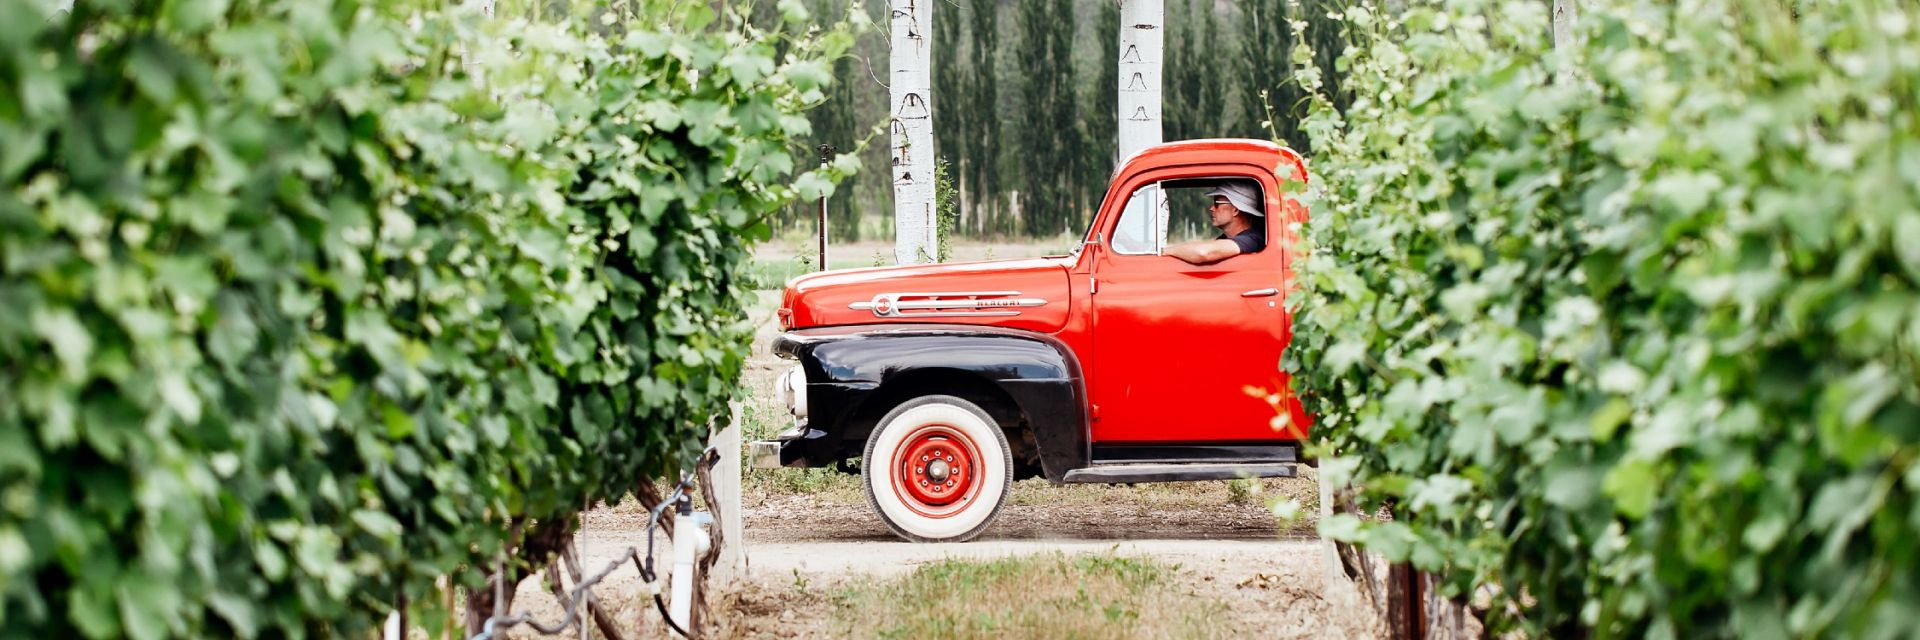 red truck in a vineyard